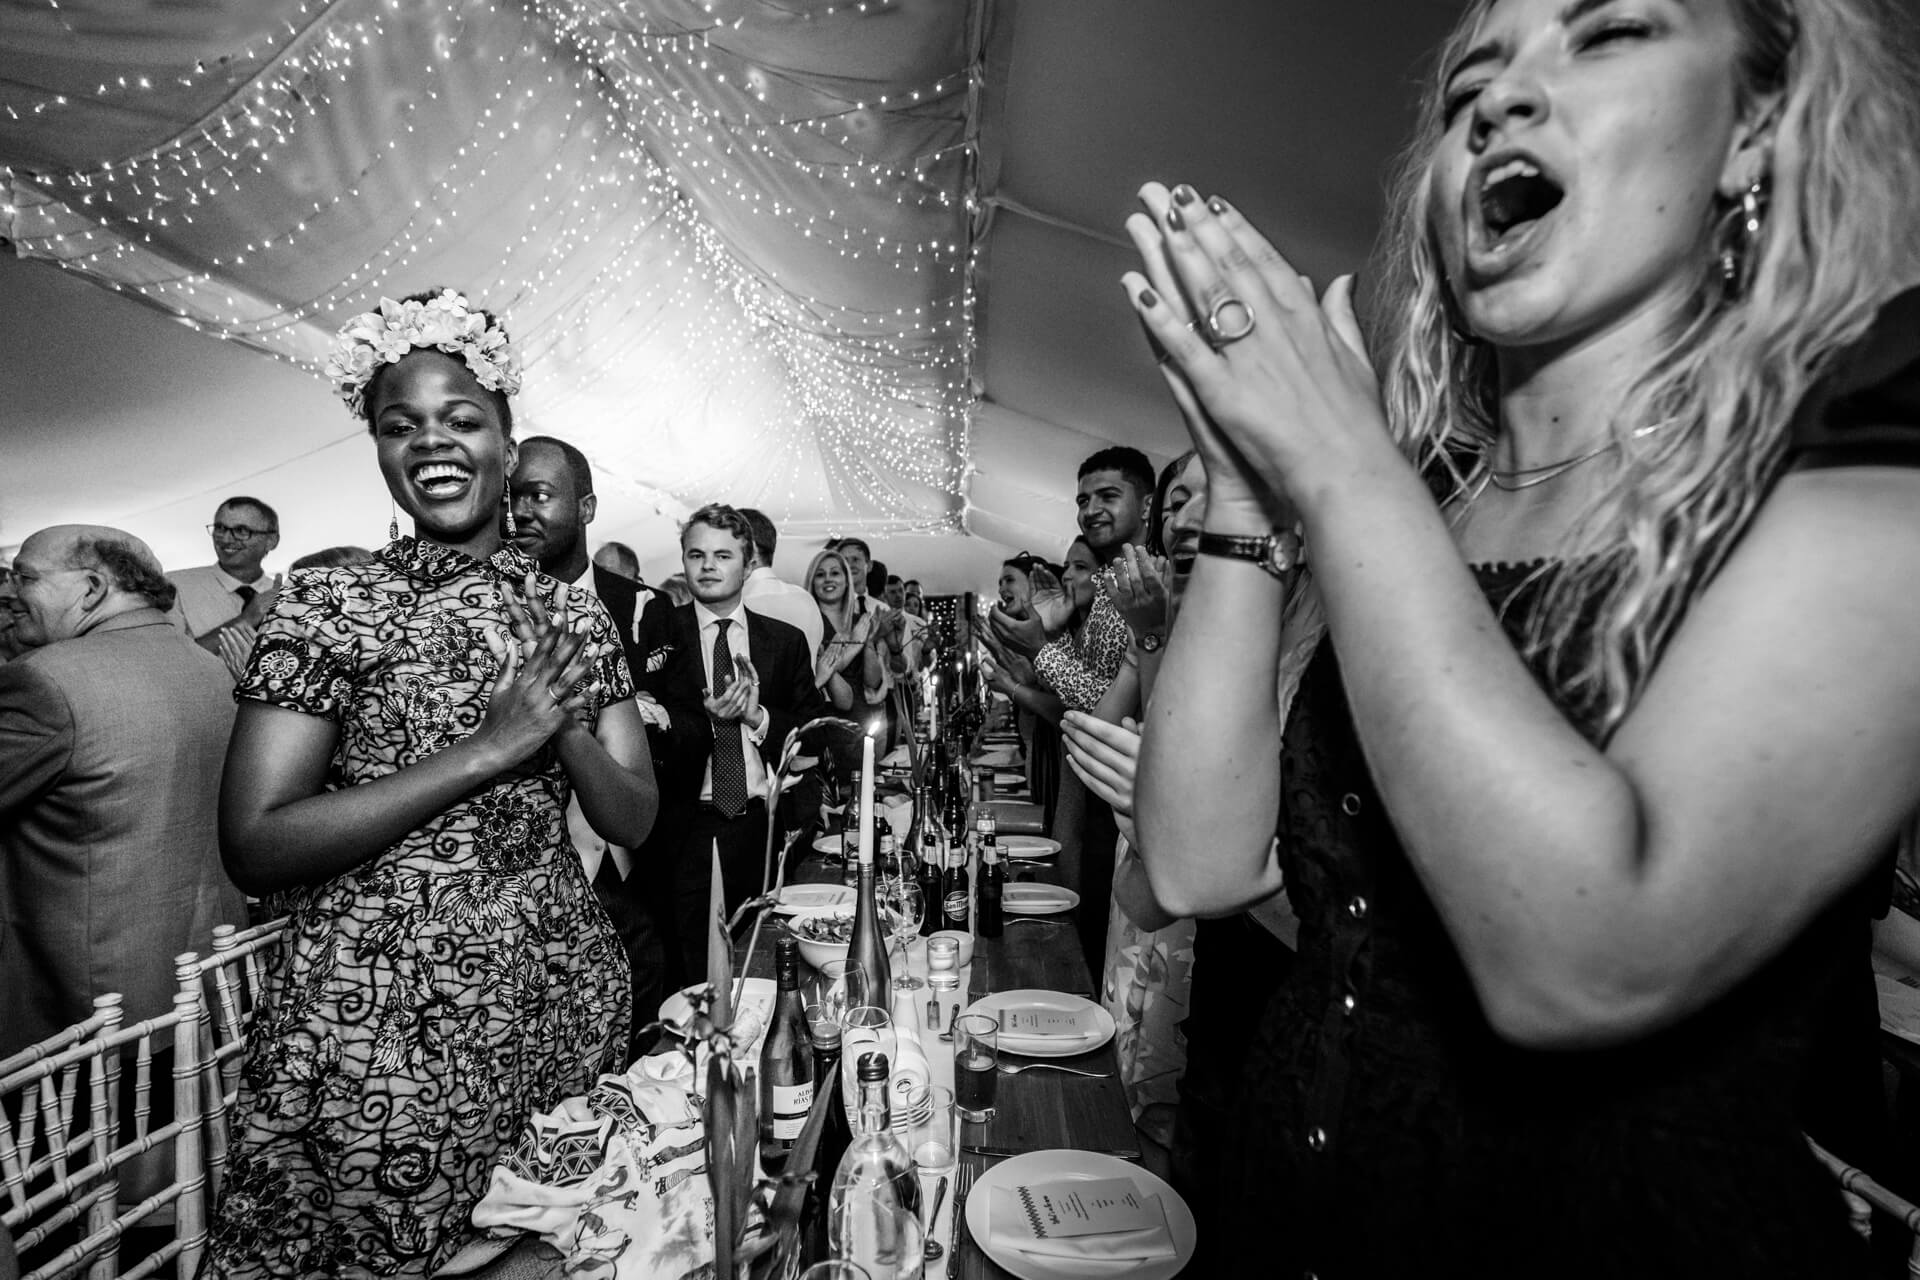 wedding guests clapping during the speeches